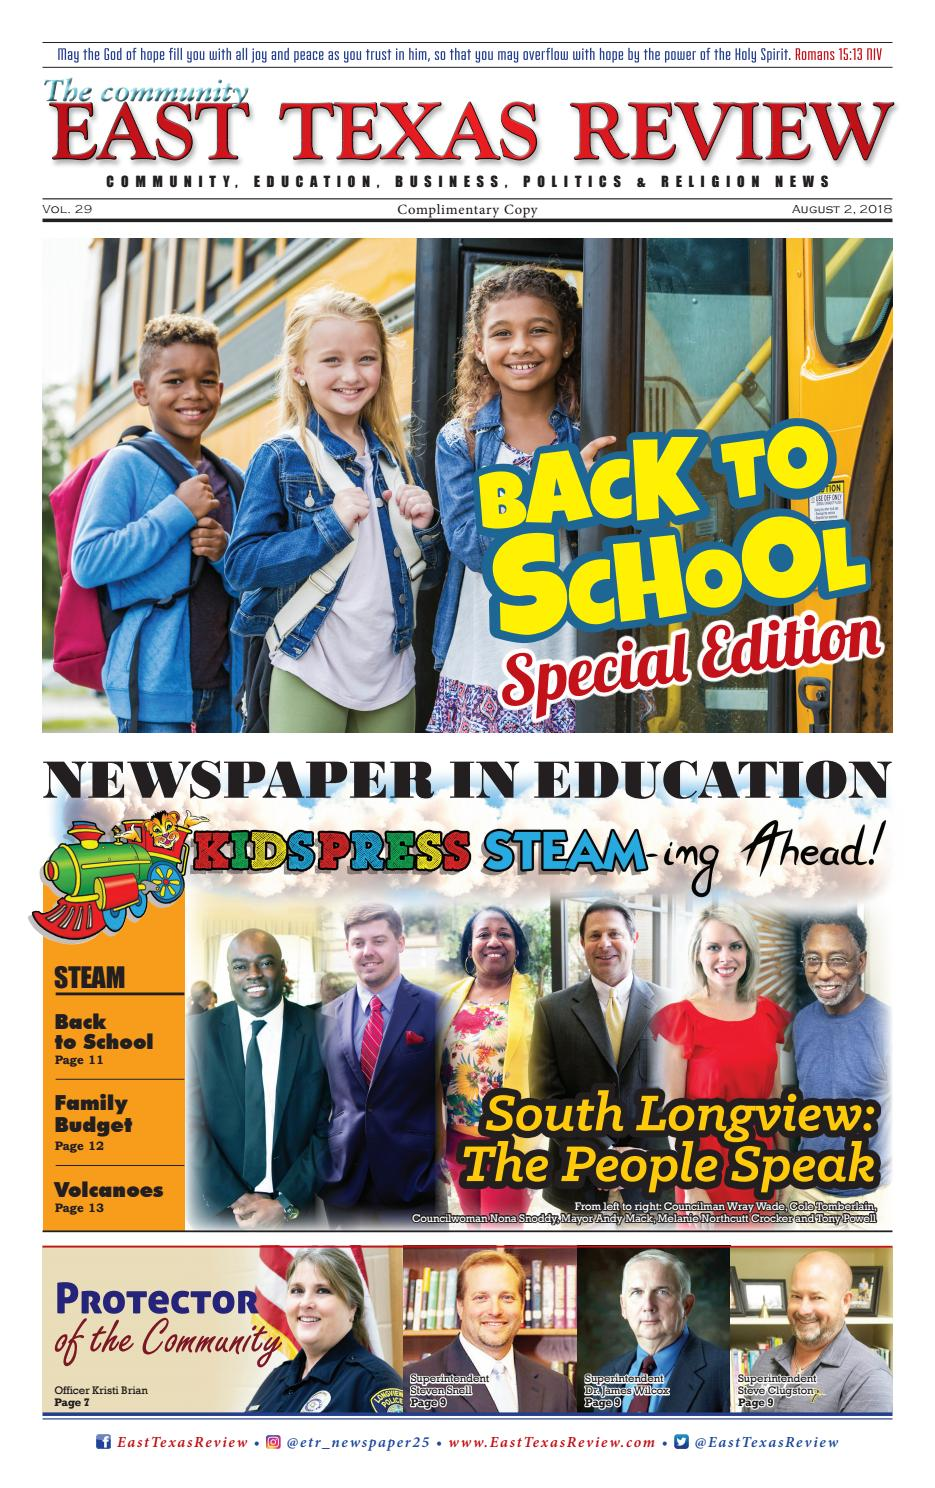 East Texas Review: Back to School Special Edition